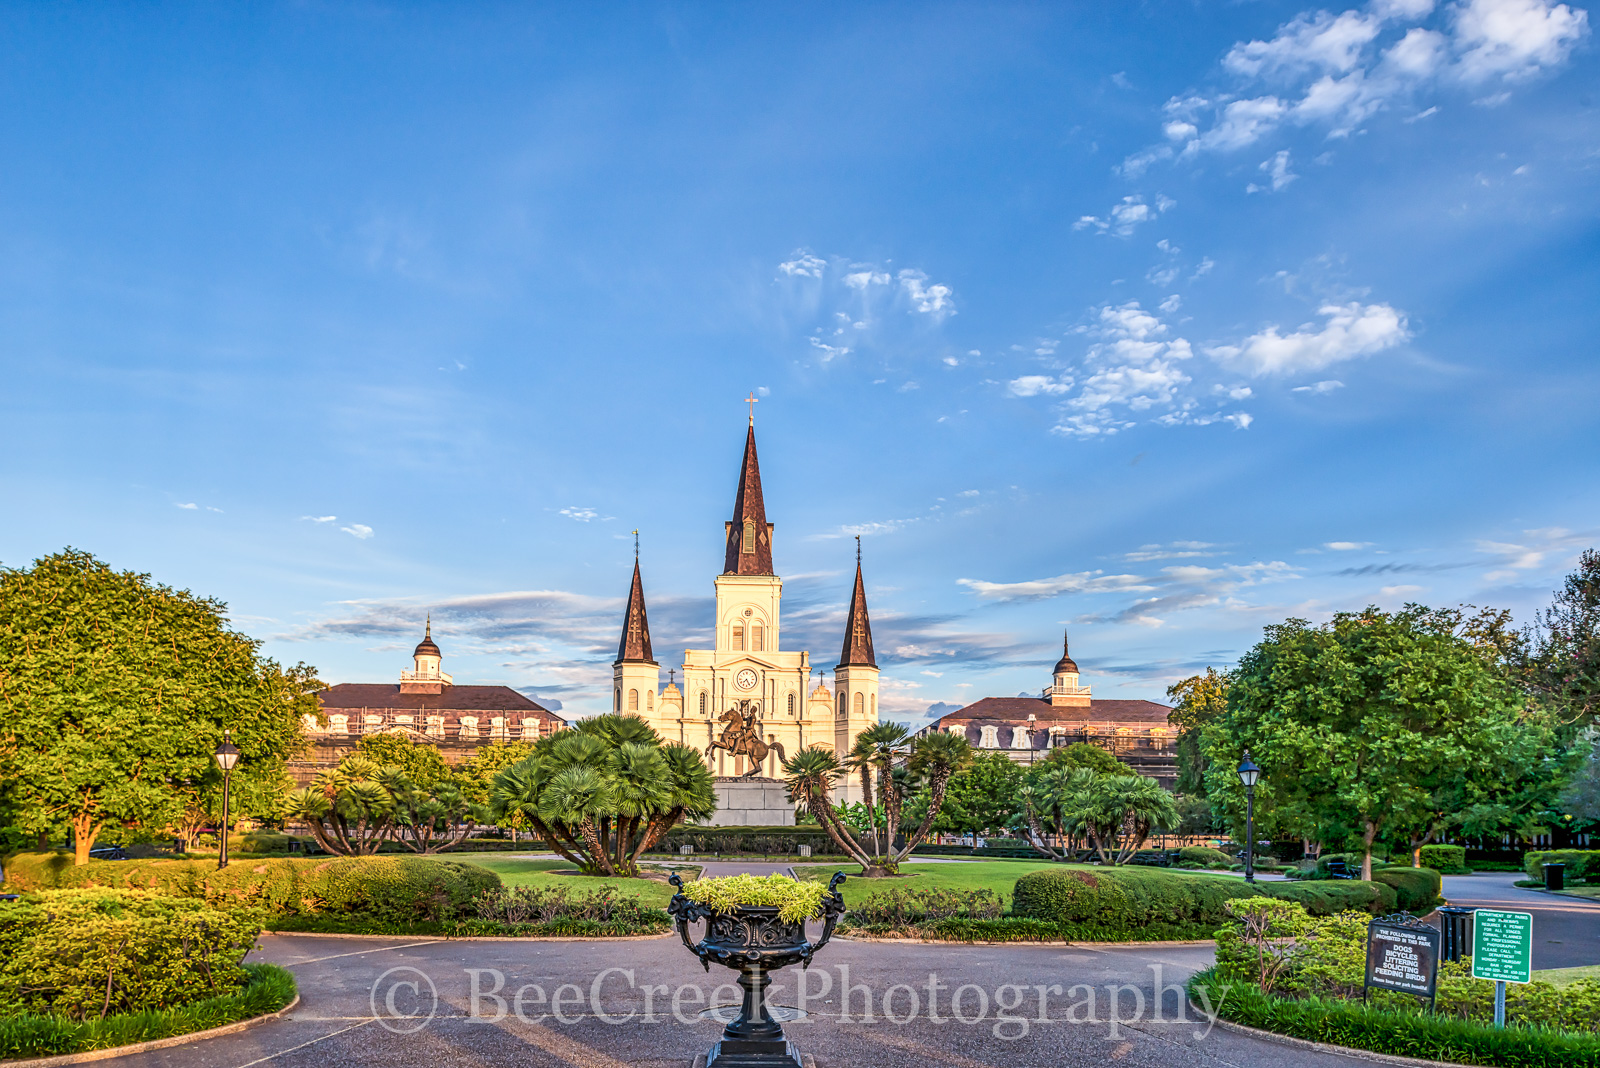 Cathedral, Jackson Square, Jackson statue, New Orleans, Saint Louis, blue sky, cityscape, cityscapes, garden, historic, landmark, landscape, landscapes, mississippi, morning, park, New Orleans citysca